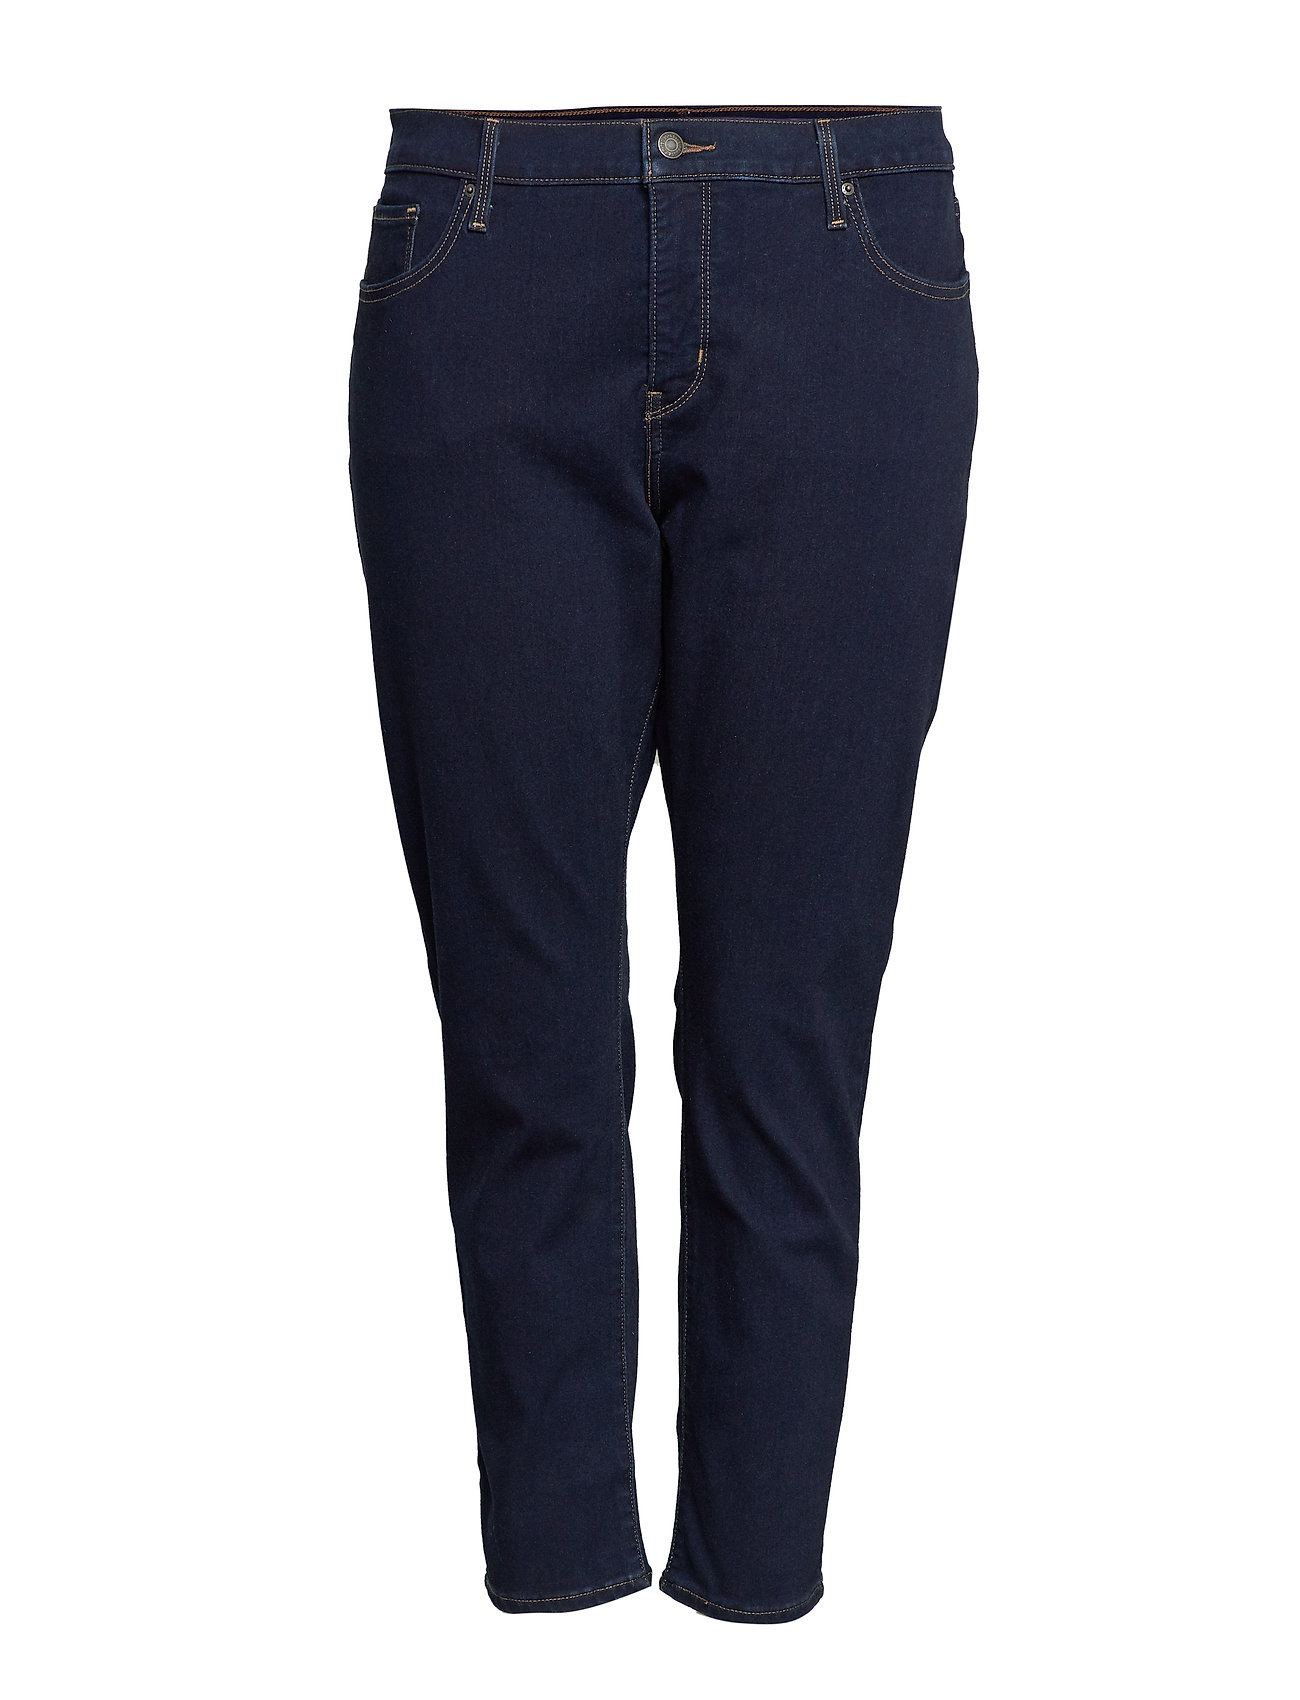 Levi's Plus Size 311 PL SHAPING SKINNY OPEN OCE - MED INDIGO - WORN IN